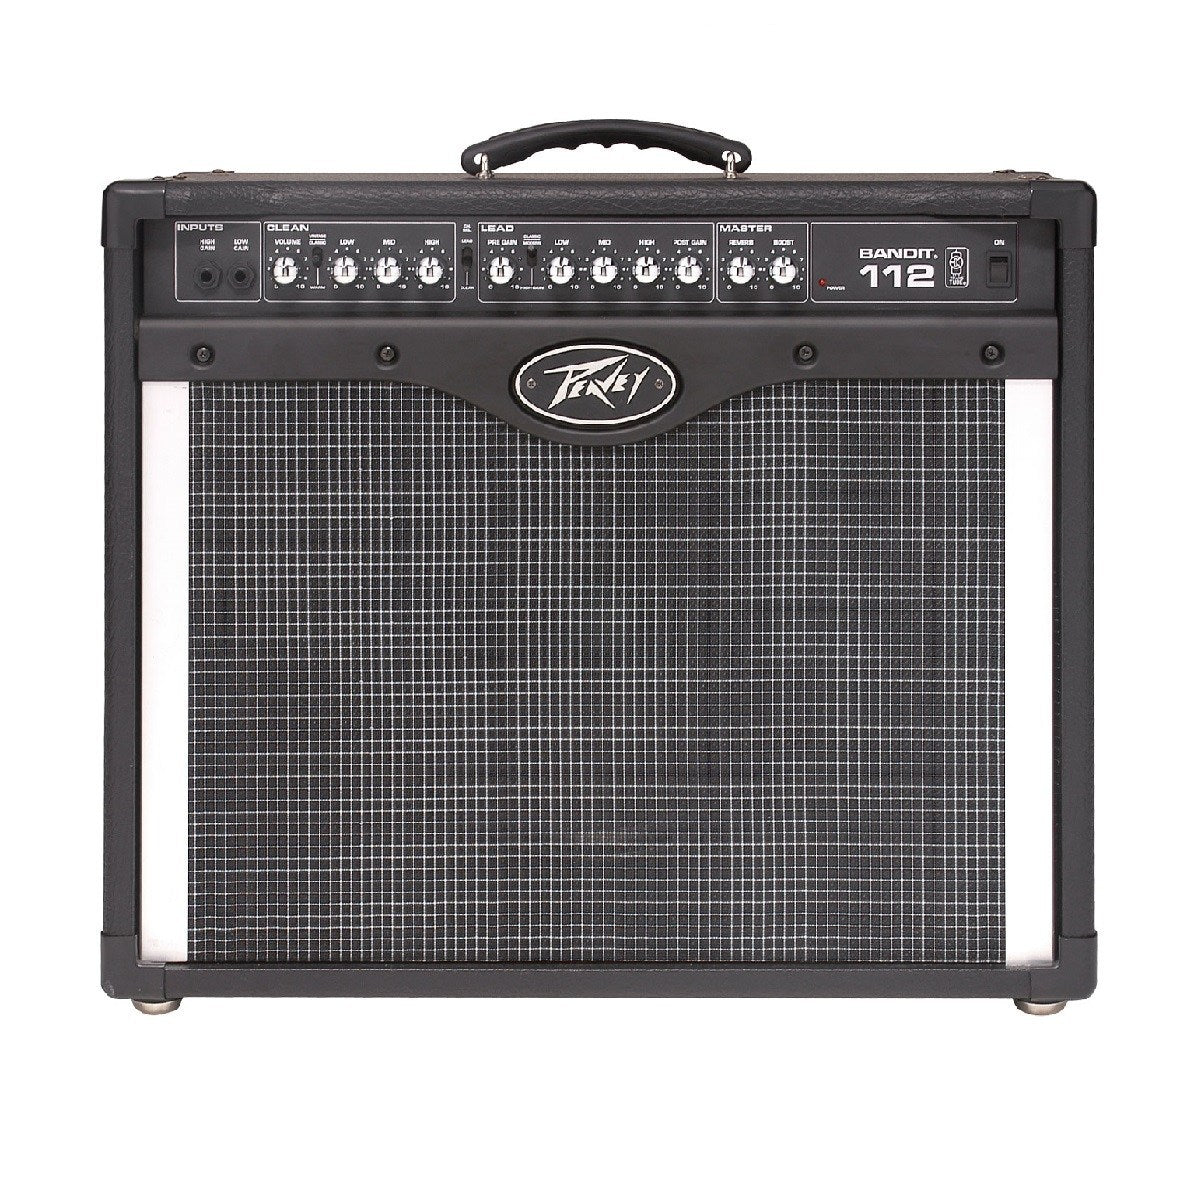 Peavey Bandit 112 Transtube Guitar amplifier